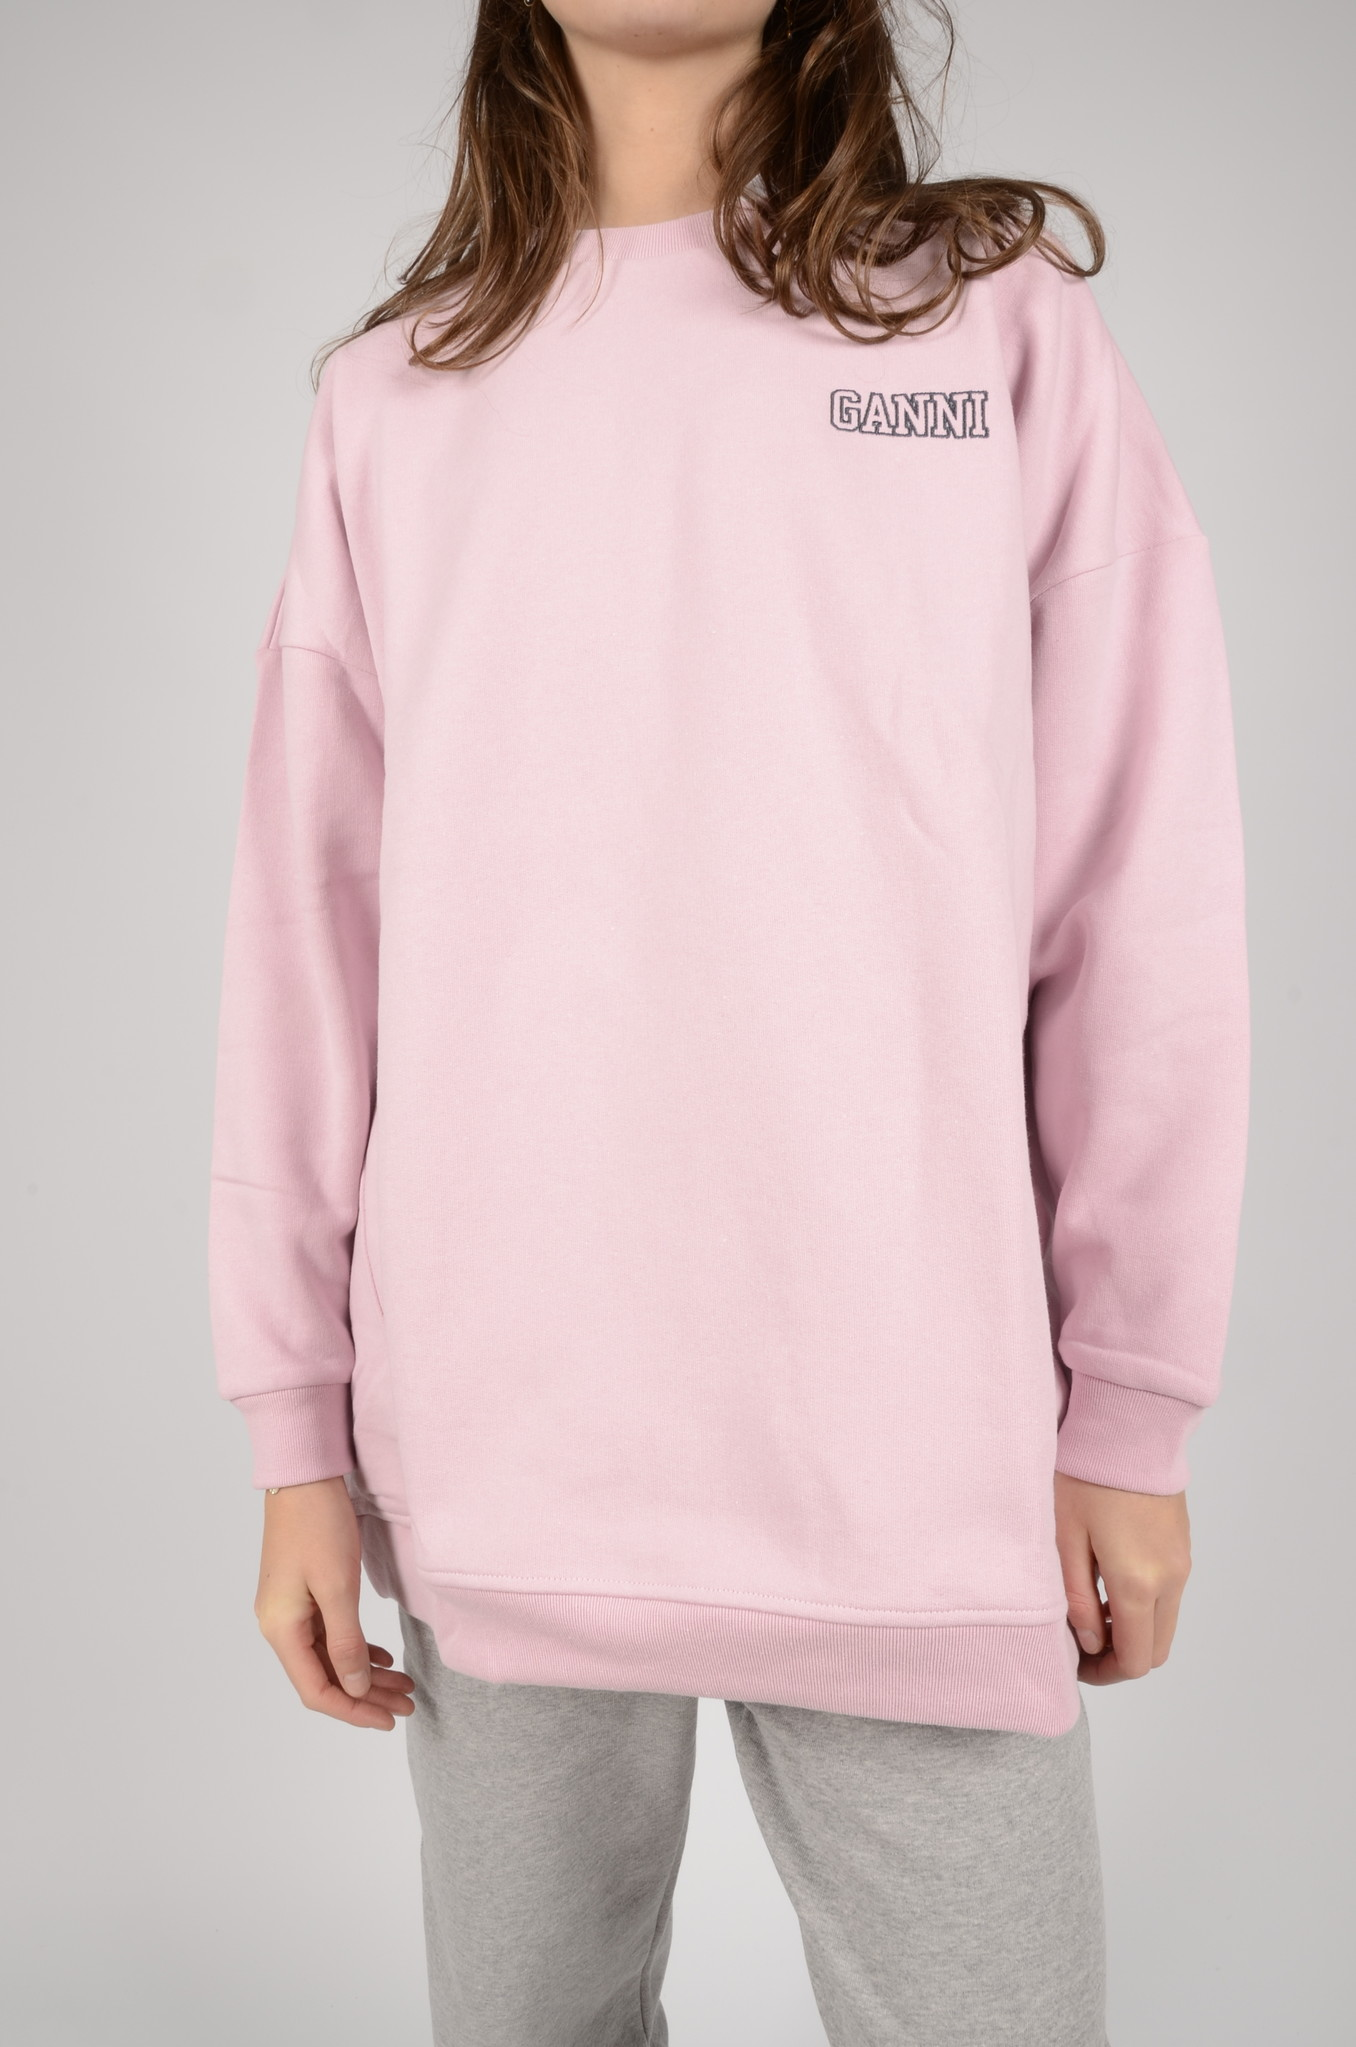 GA SOFTWARE OVERSIZED SWEATSHIRT-5